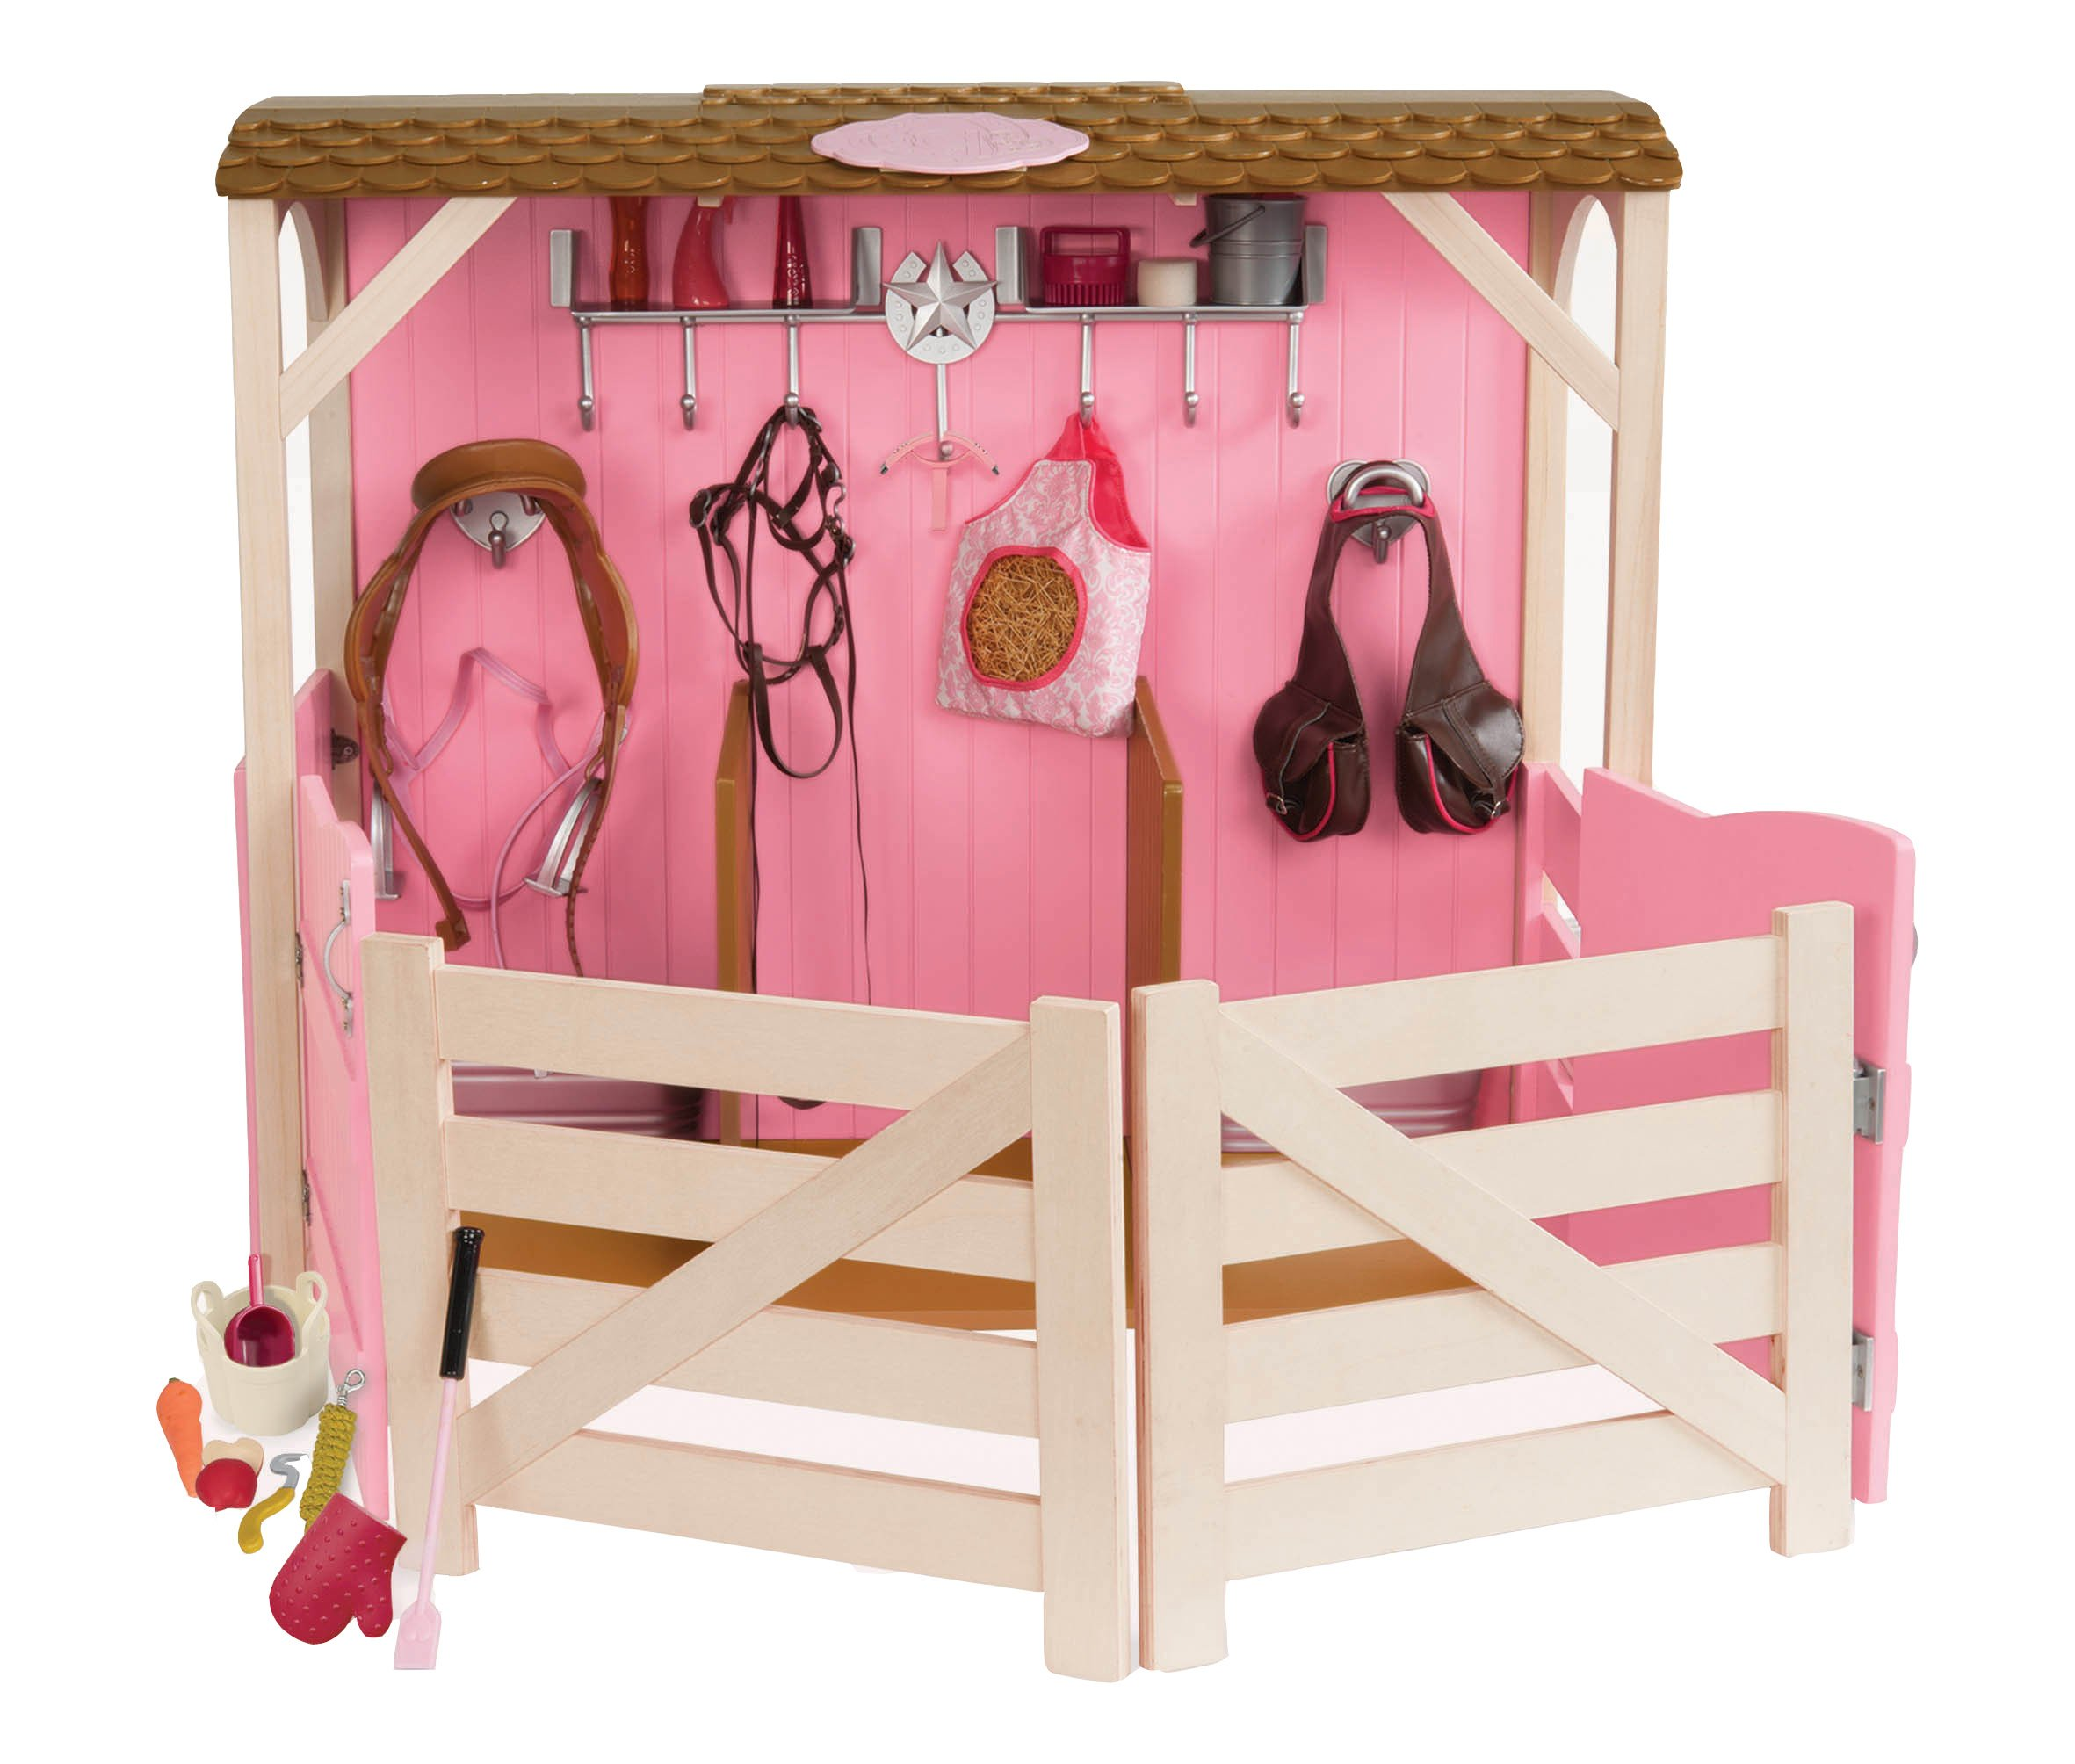 Our Generation Dolls Saddle Up Stables Horse Barn for Dolls, 18''